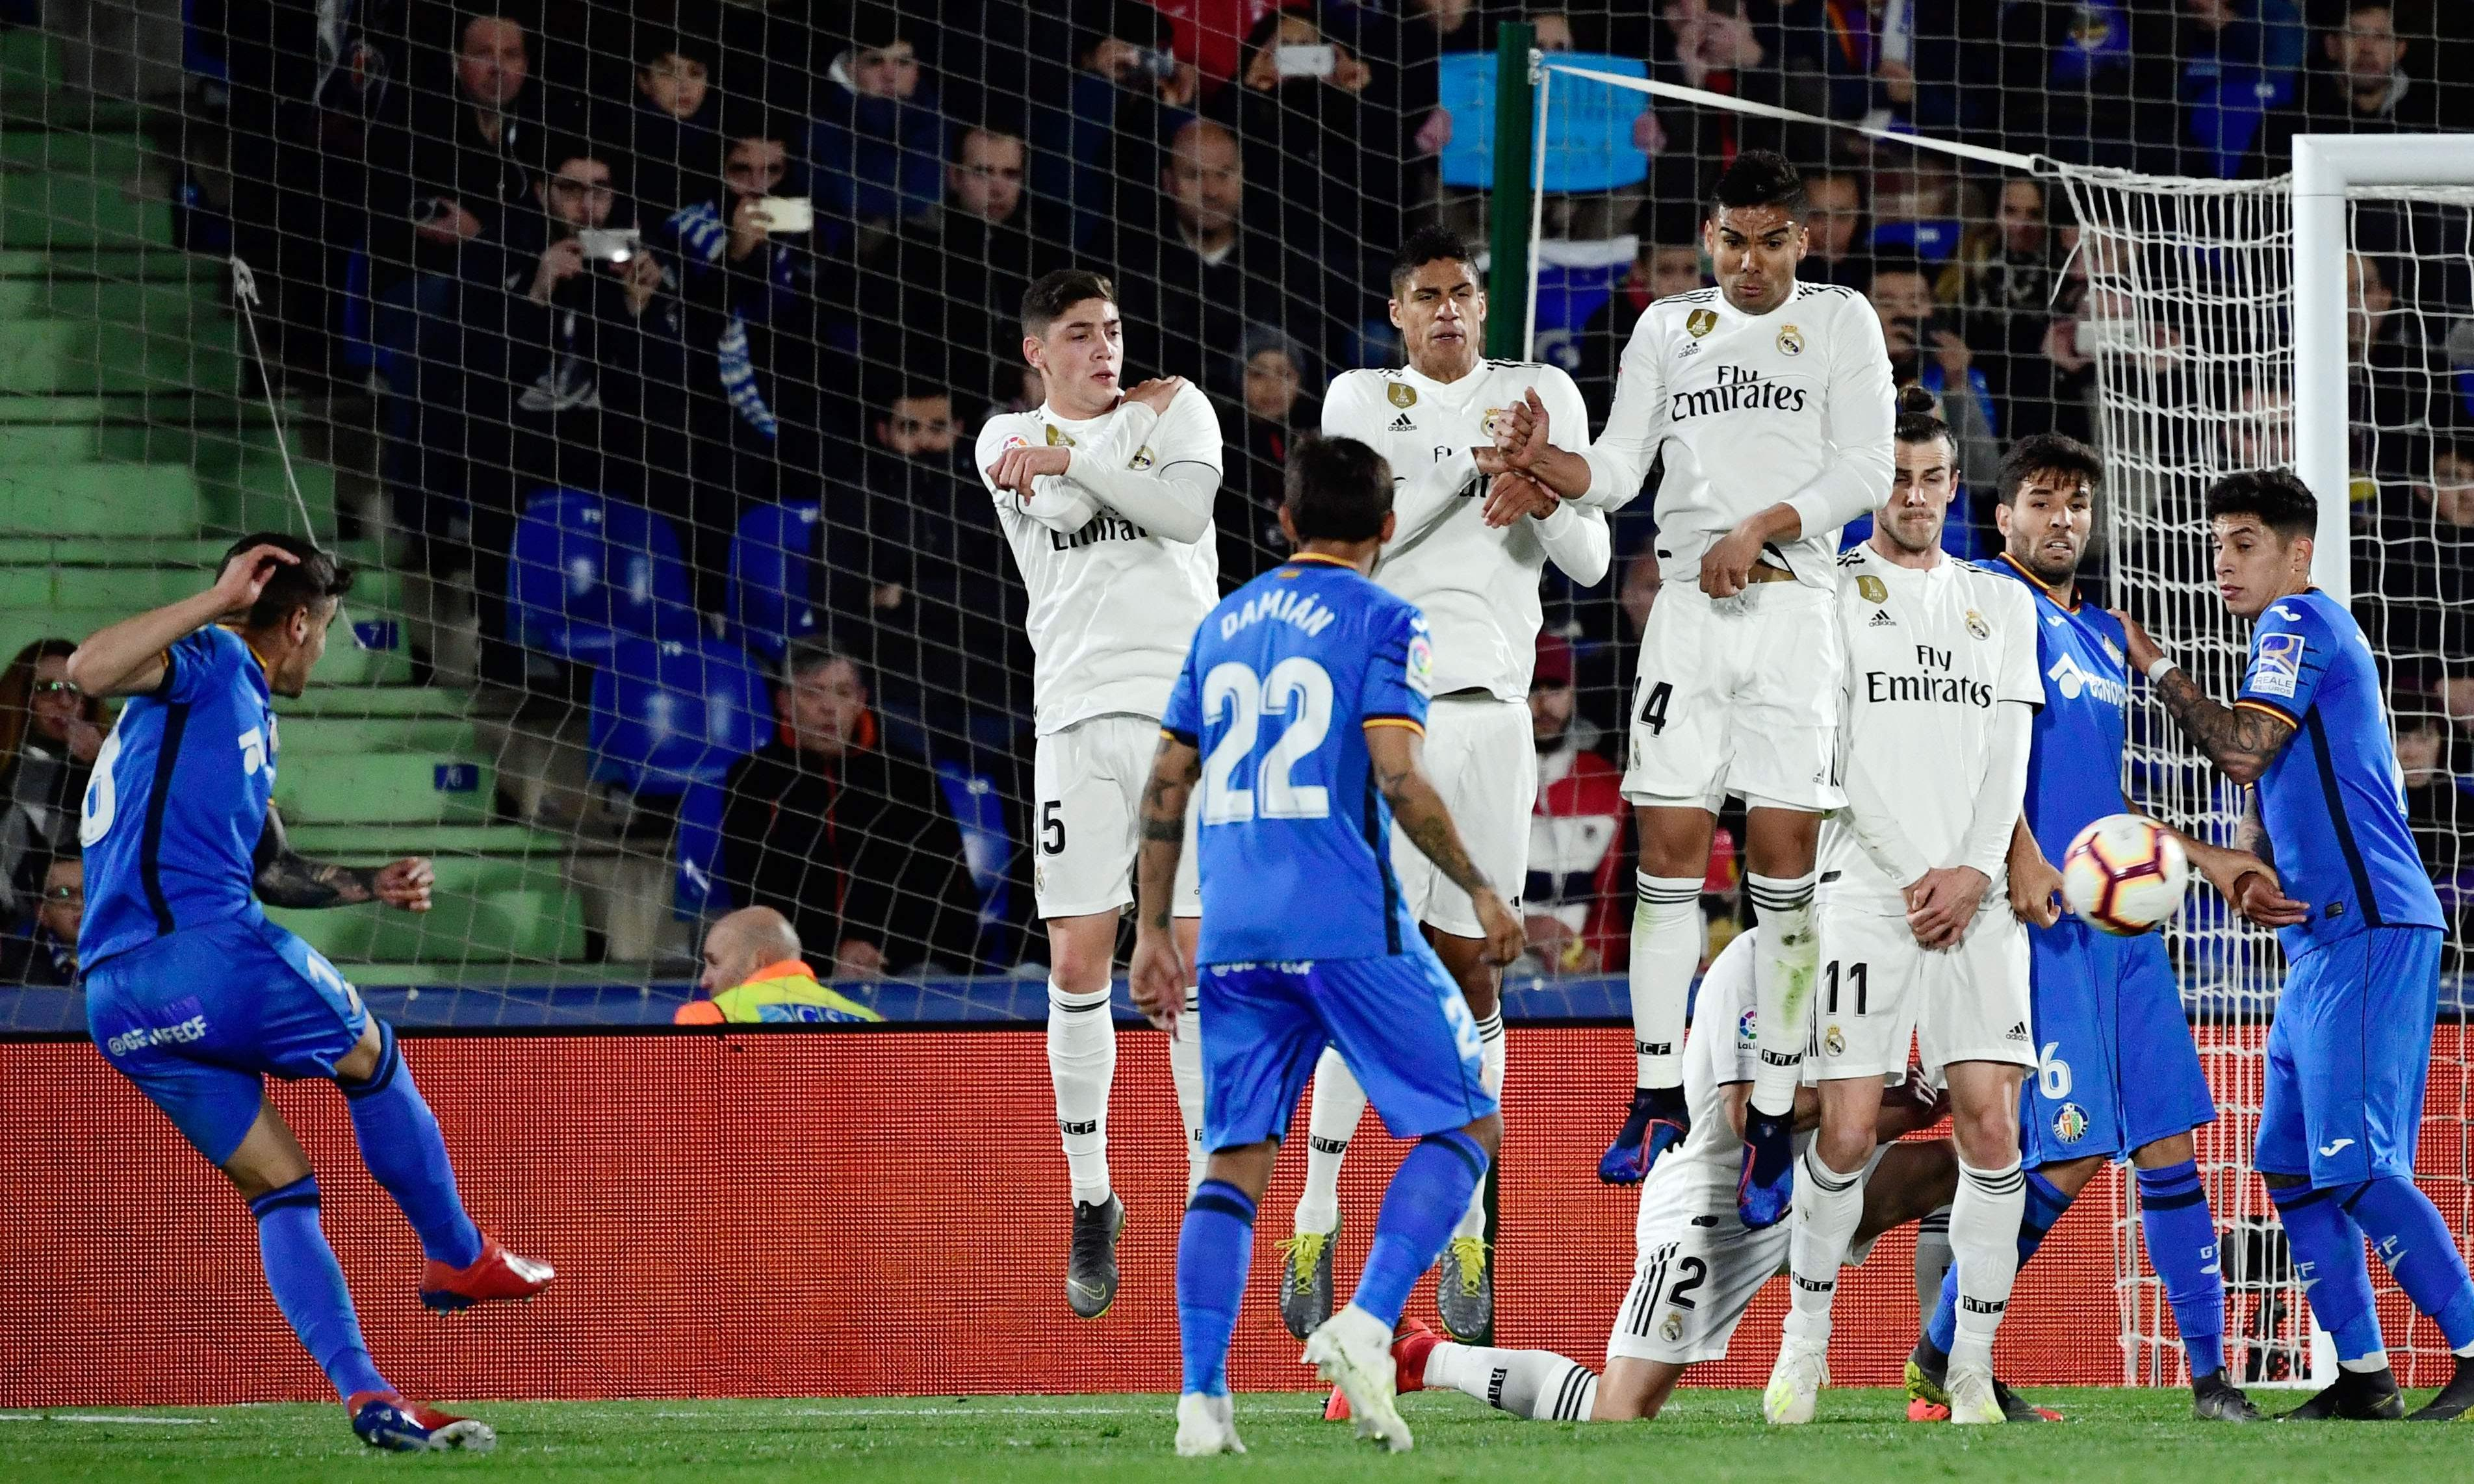 Yes, Getafe really might be on their way to the Champions League